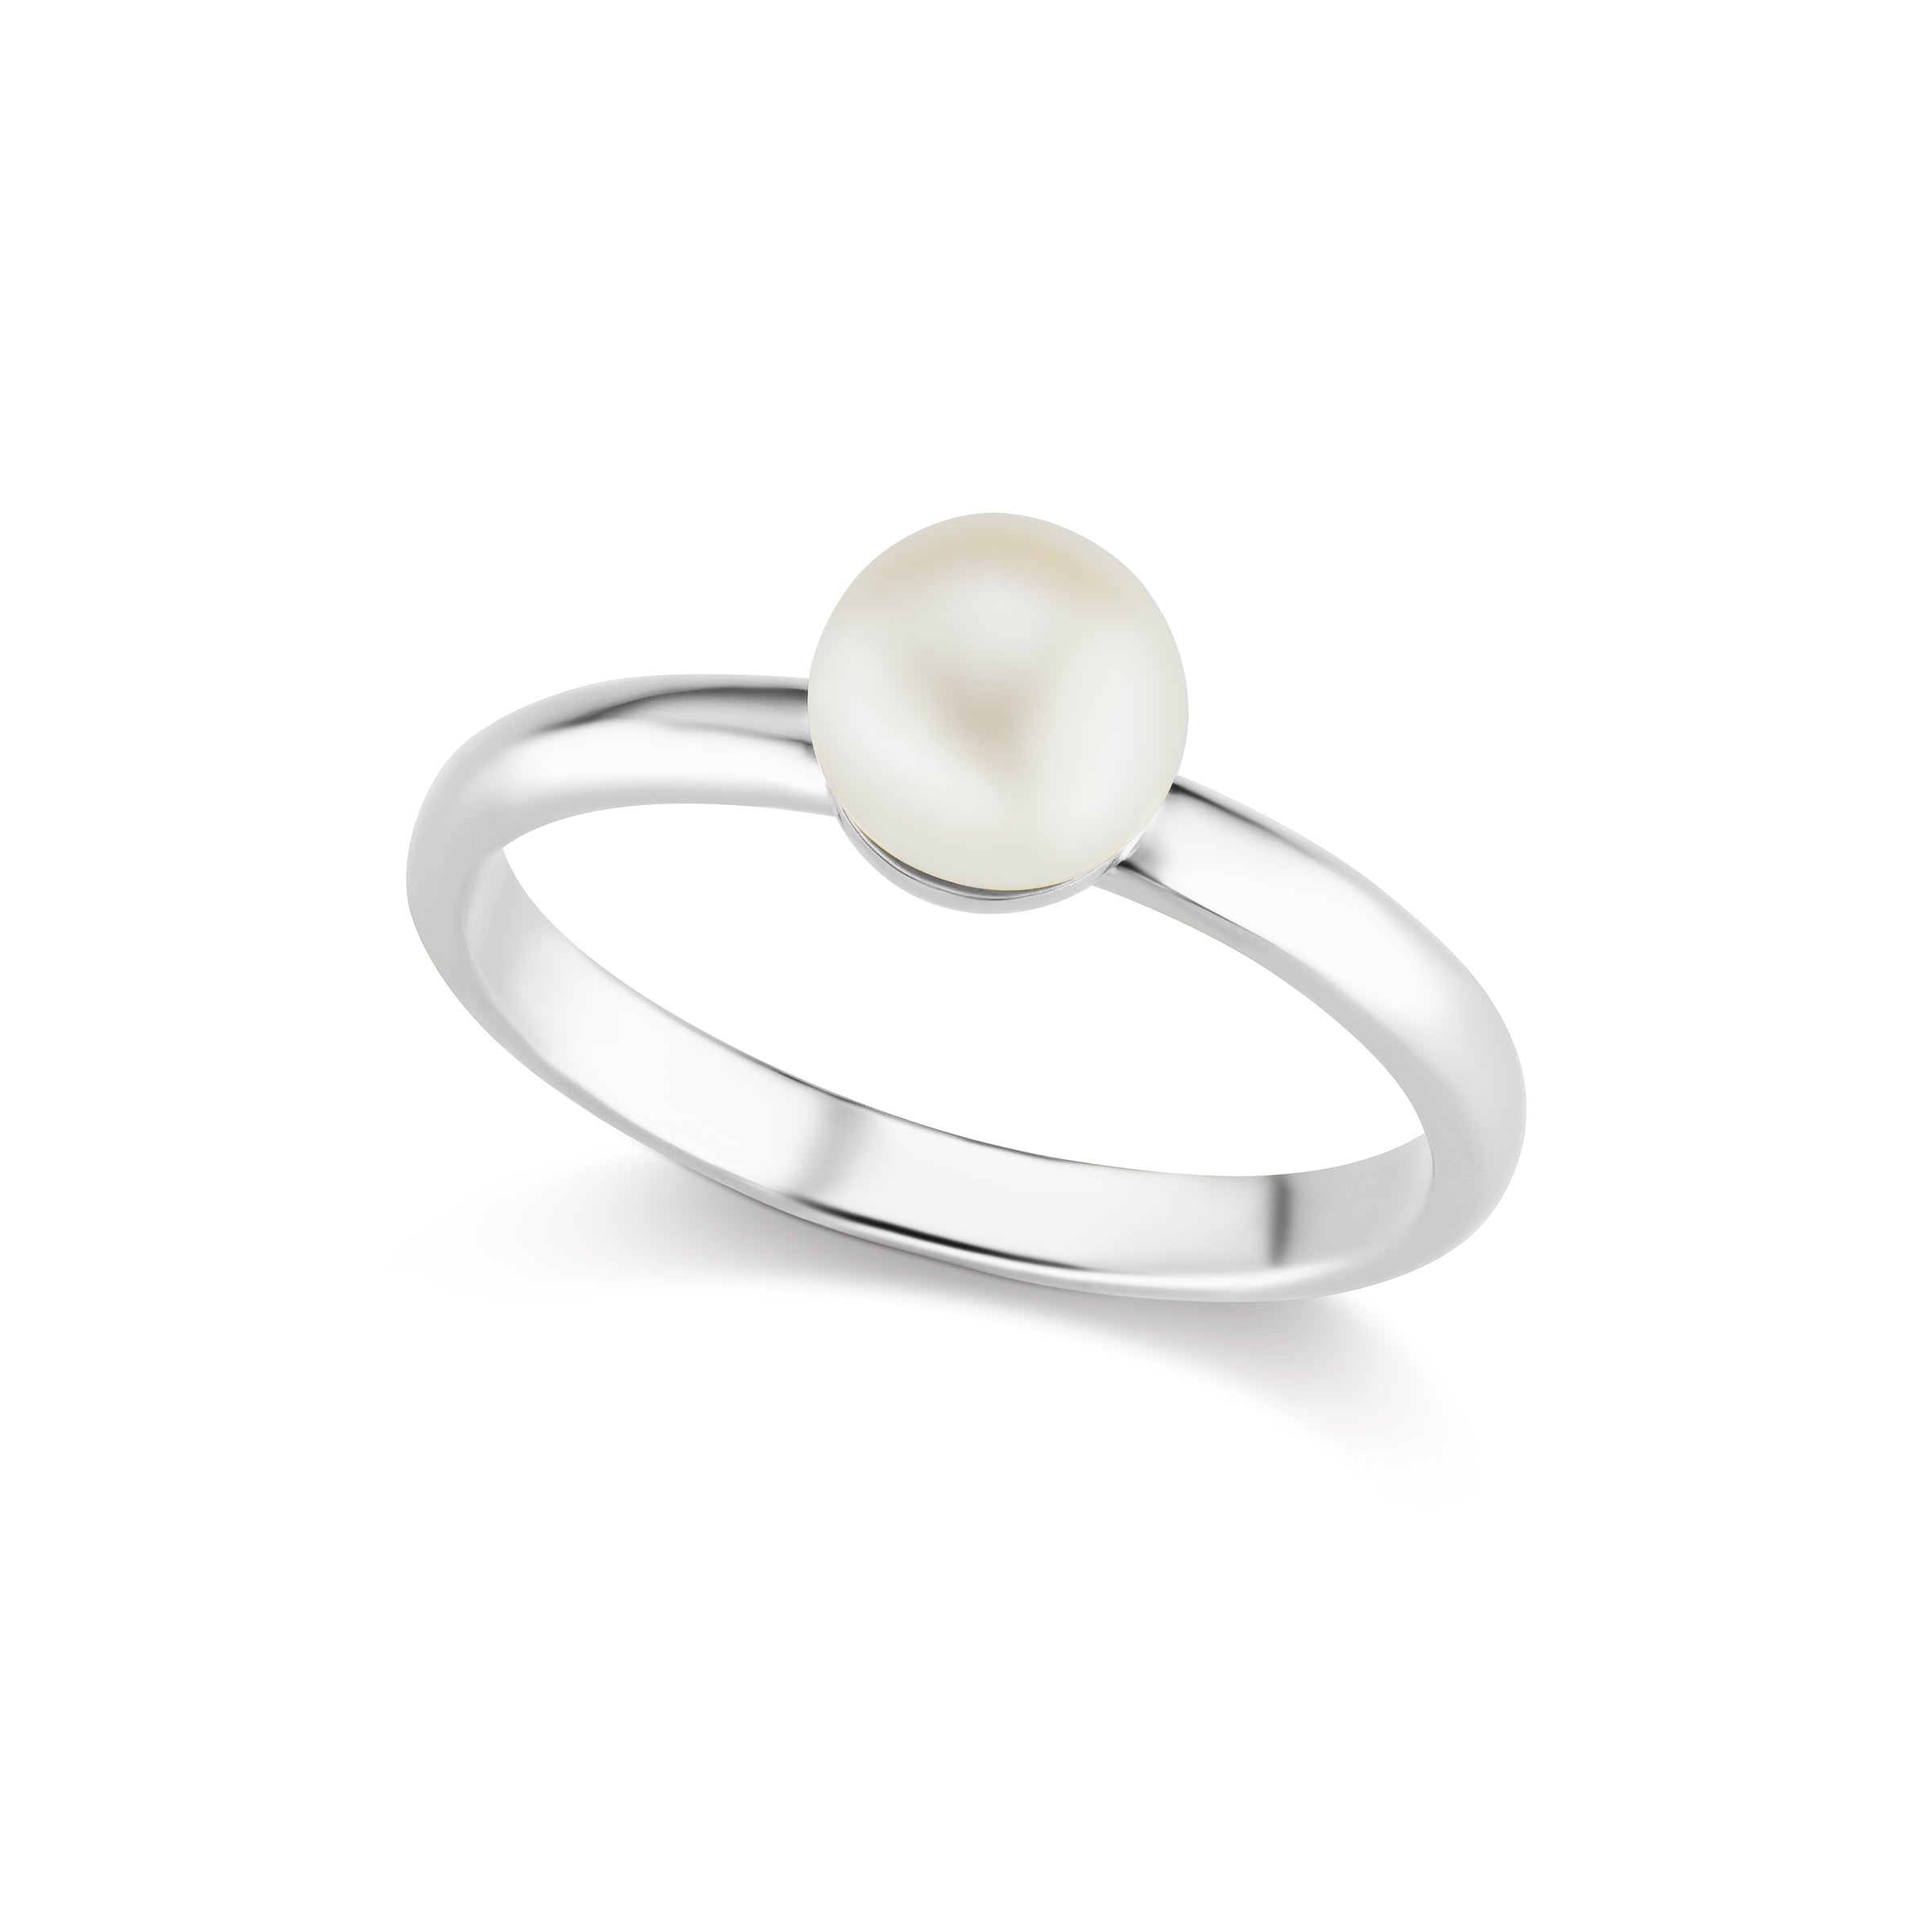 The Silver Single Pearl Ring